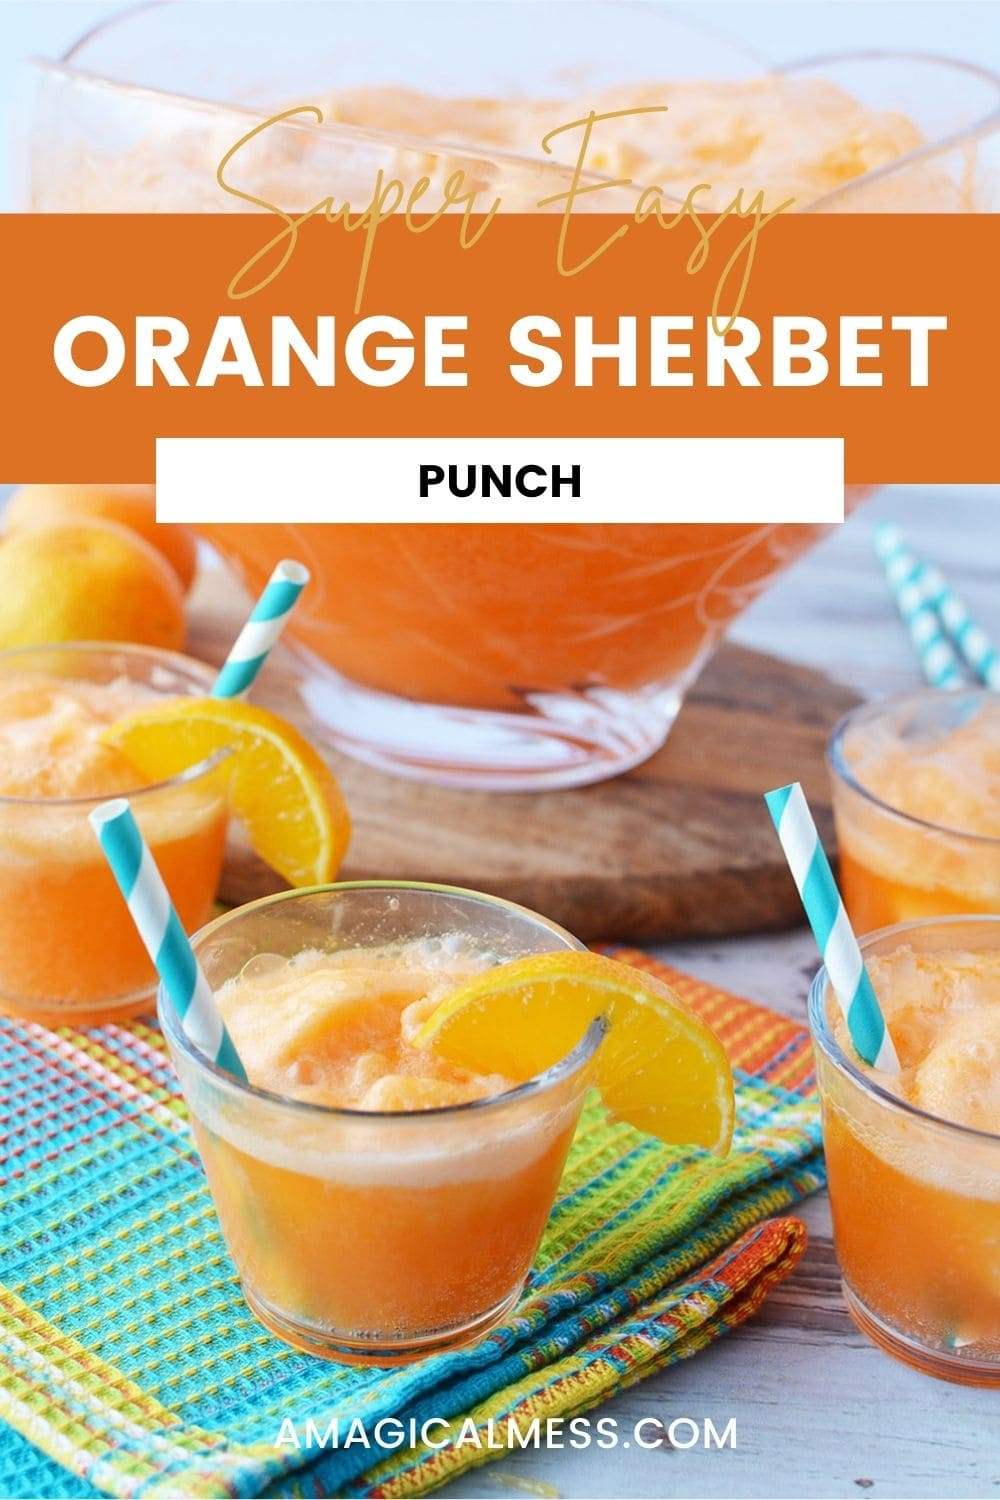 Glasses of orange sherbet punch in front of punch bowl.